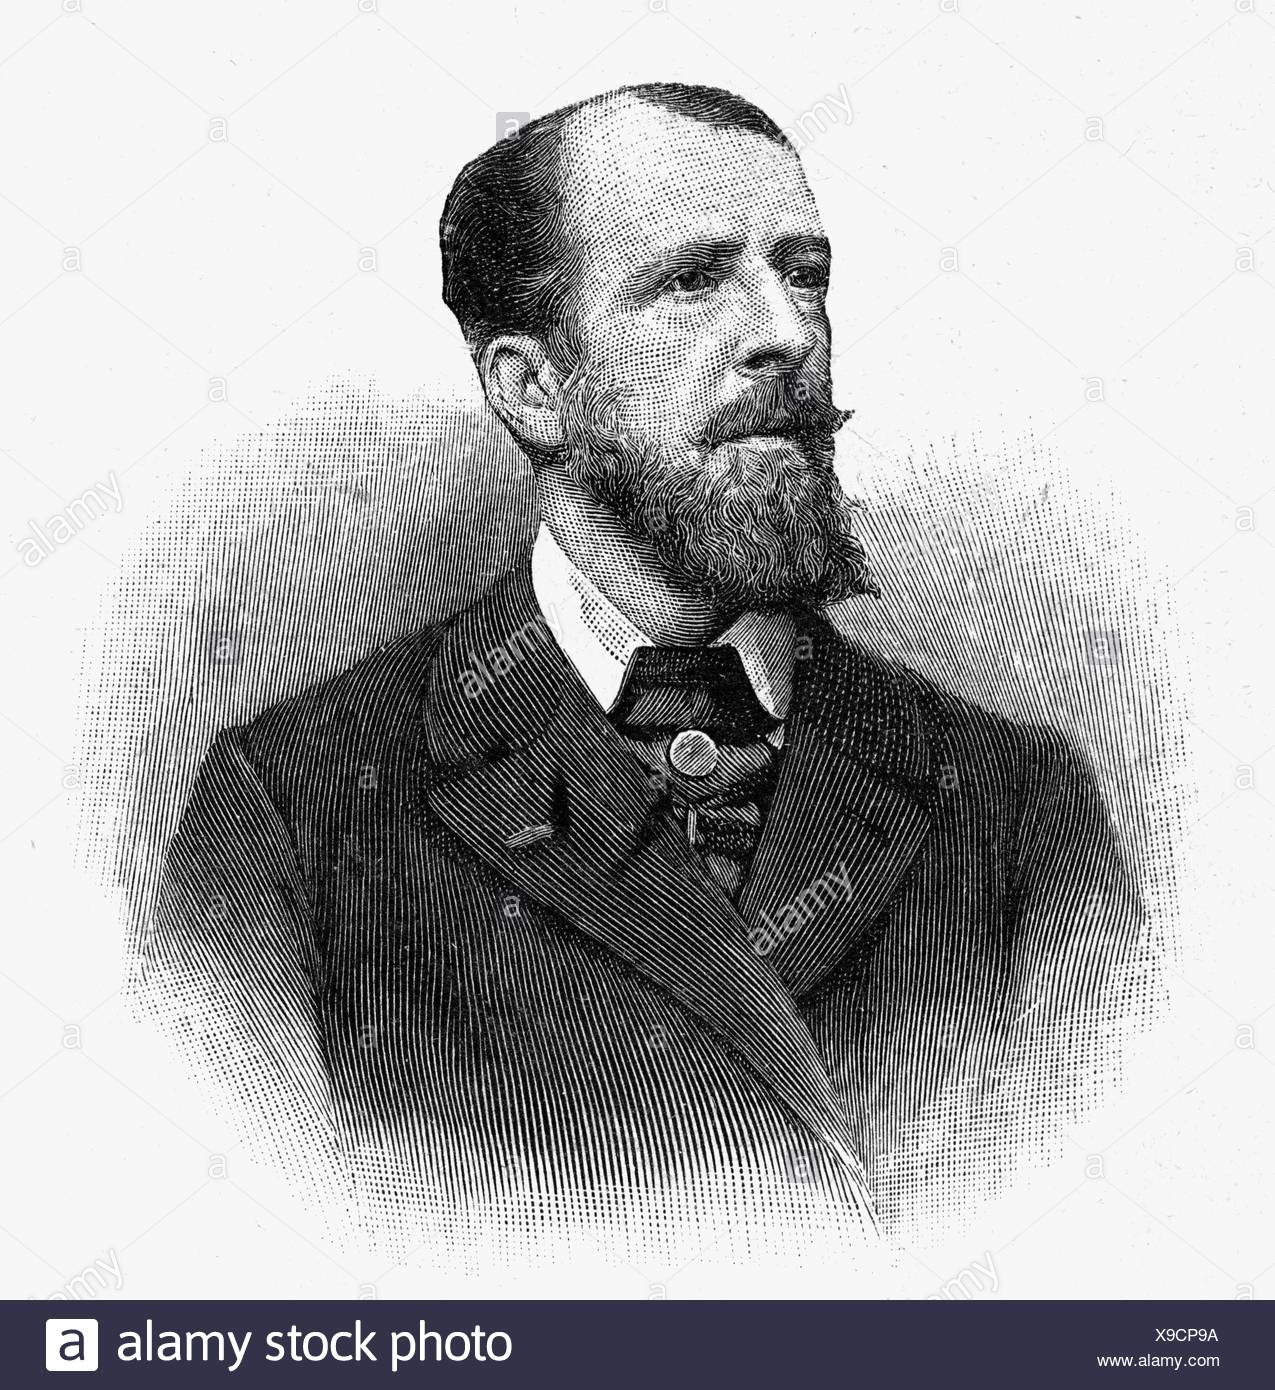 Deroulede, Paul, 2.9.1846 - 30.1.1914, French politician, poet, portrait, wood engraving, , Additional-Rights-Clearances-NA - Stock Image